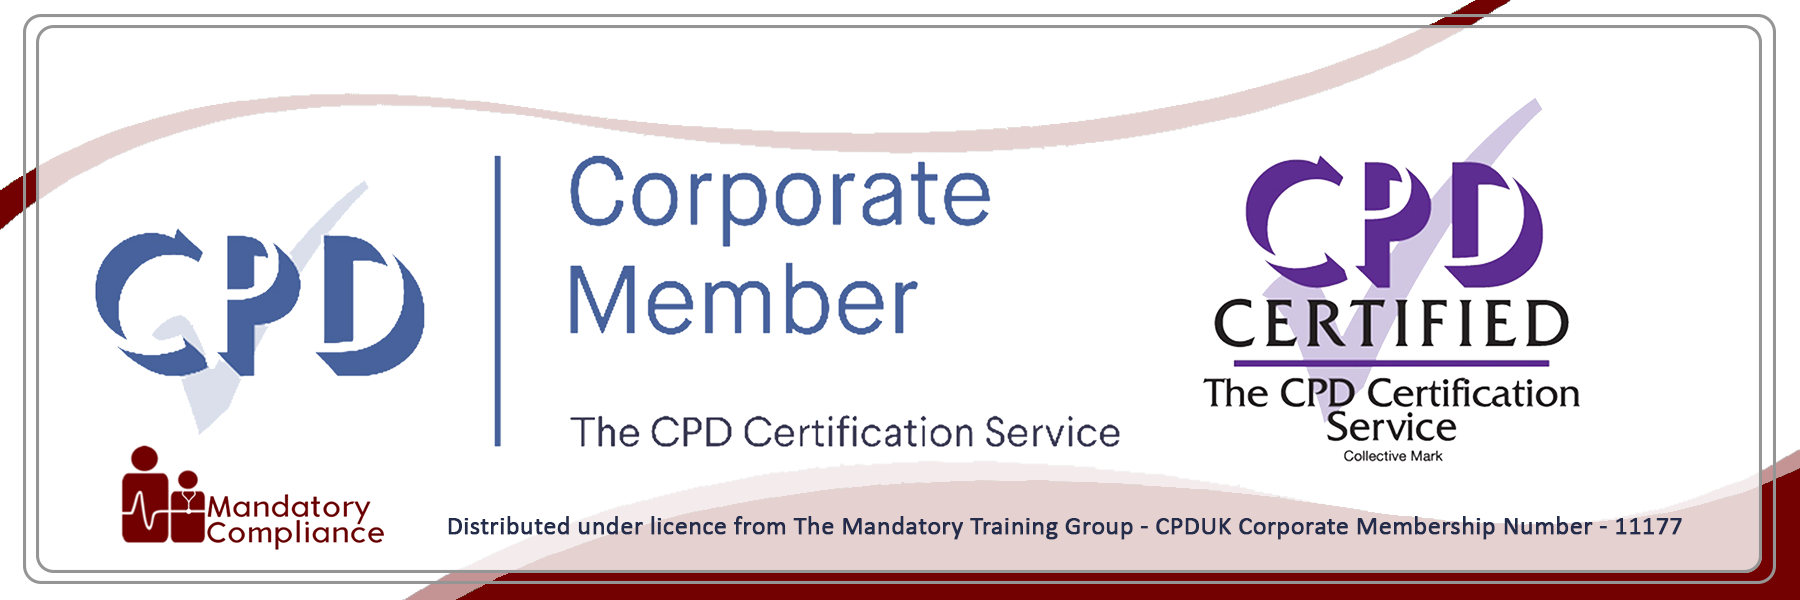 Care Certificate Standard 4 - Online Training Course - CPD Accredited - Mandatory Compliance UK -